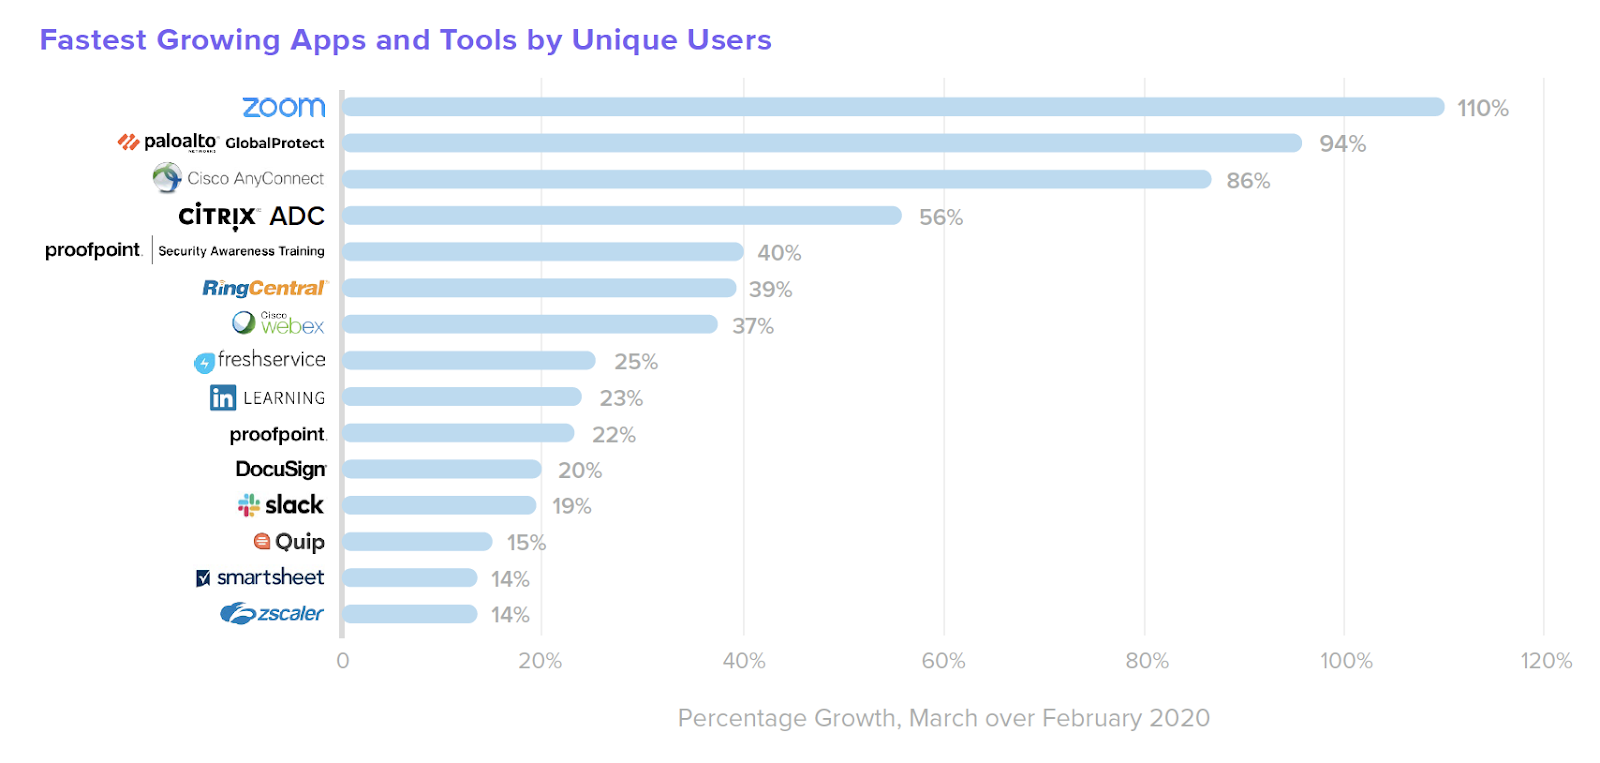 Fastest growing apps, March over February 2020